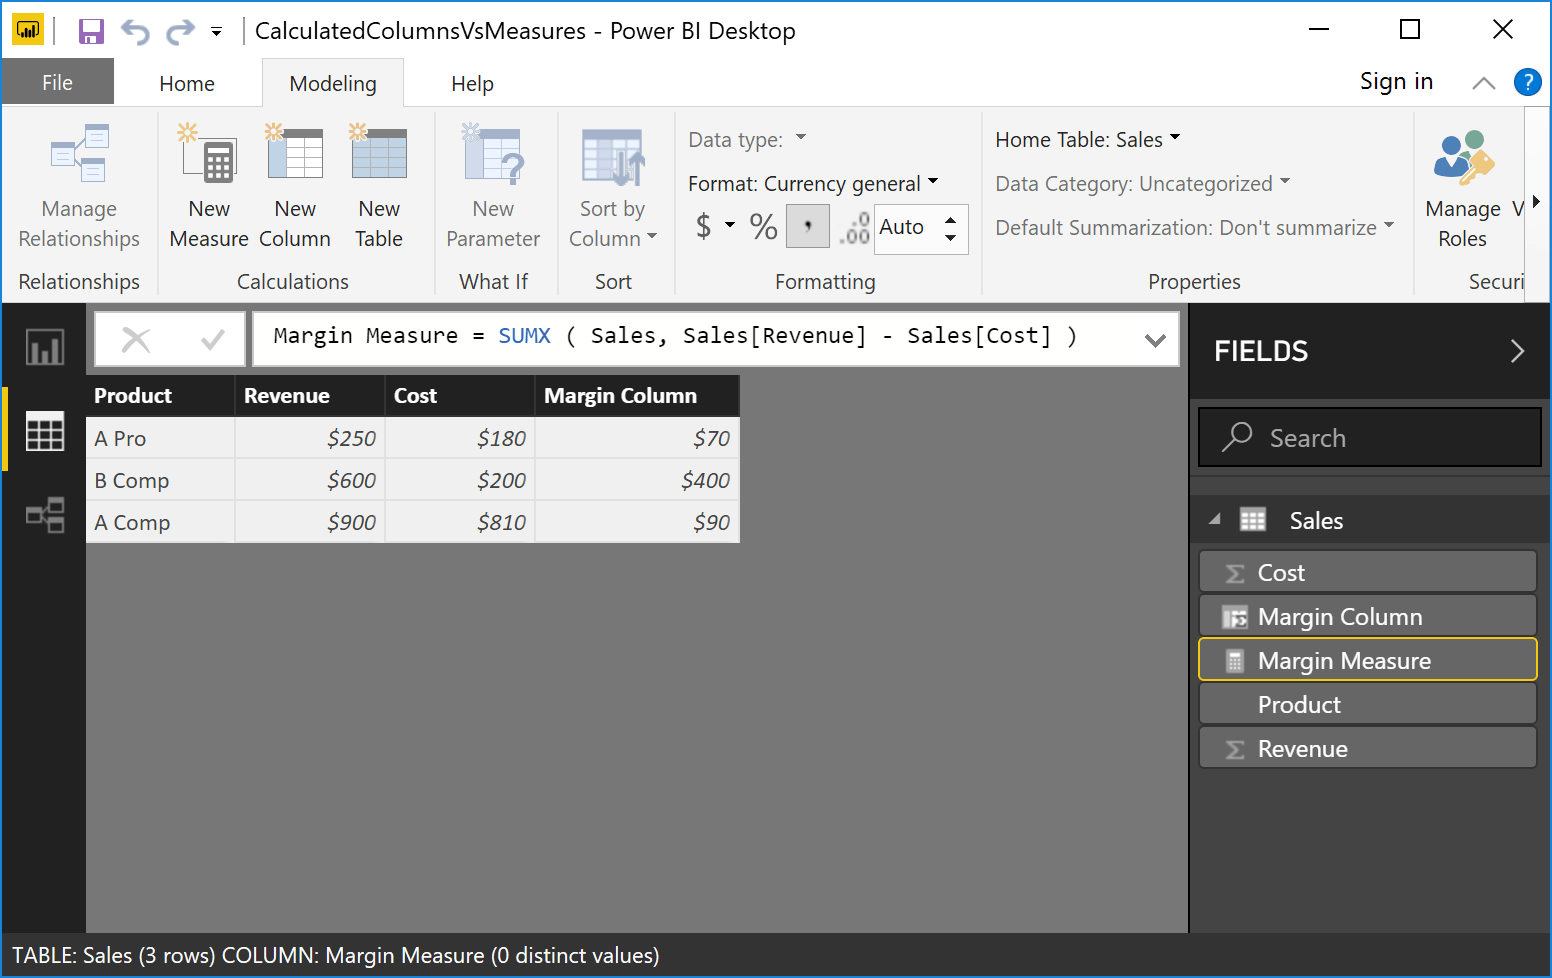 Power BI Tutorial: When to Use Calculated Columns and Measures